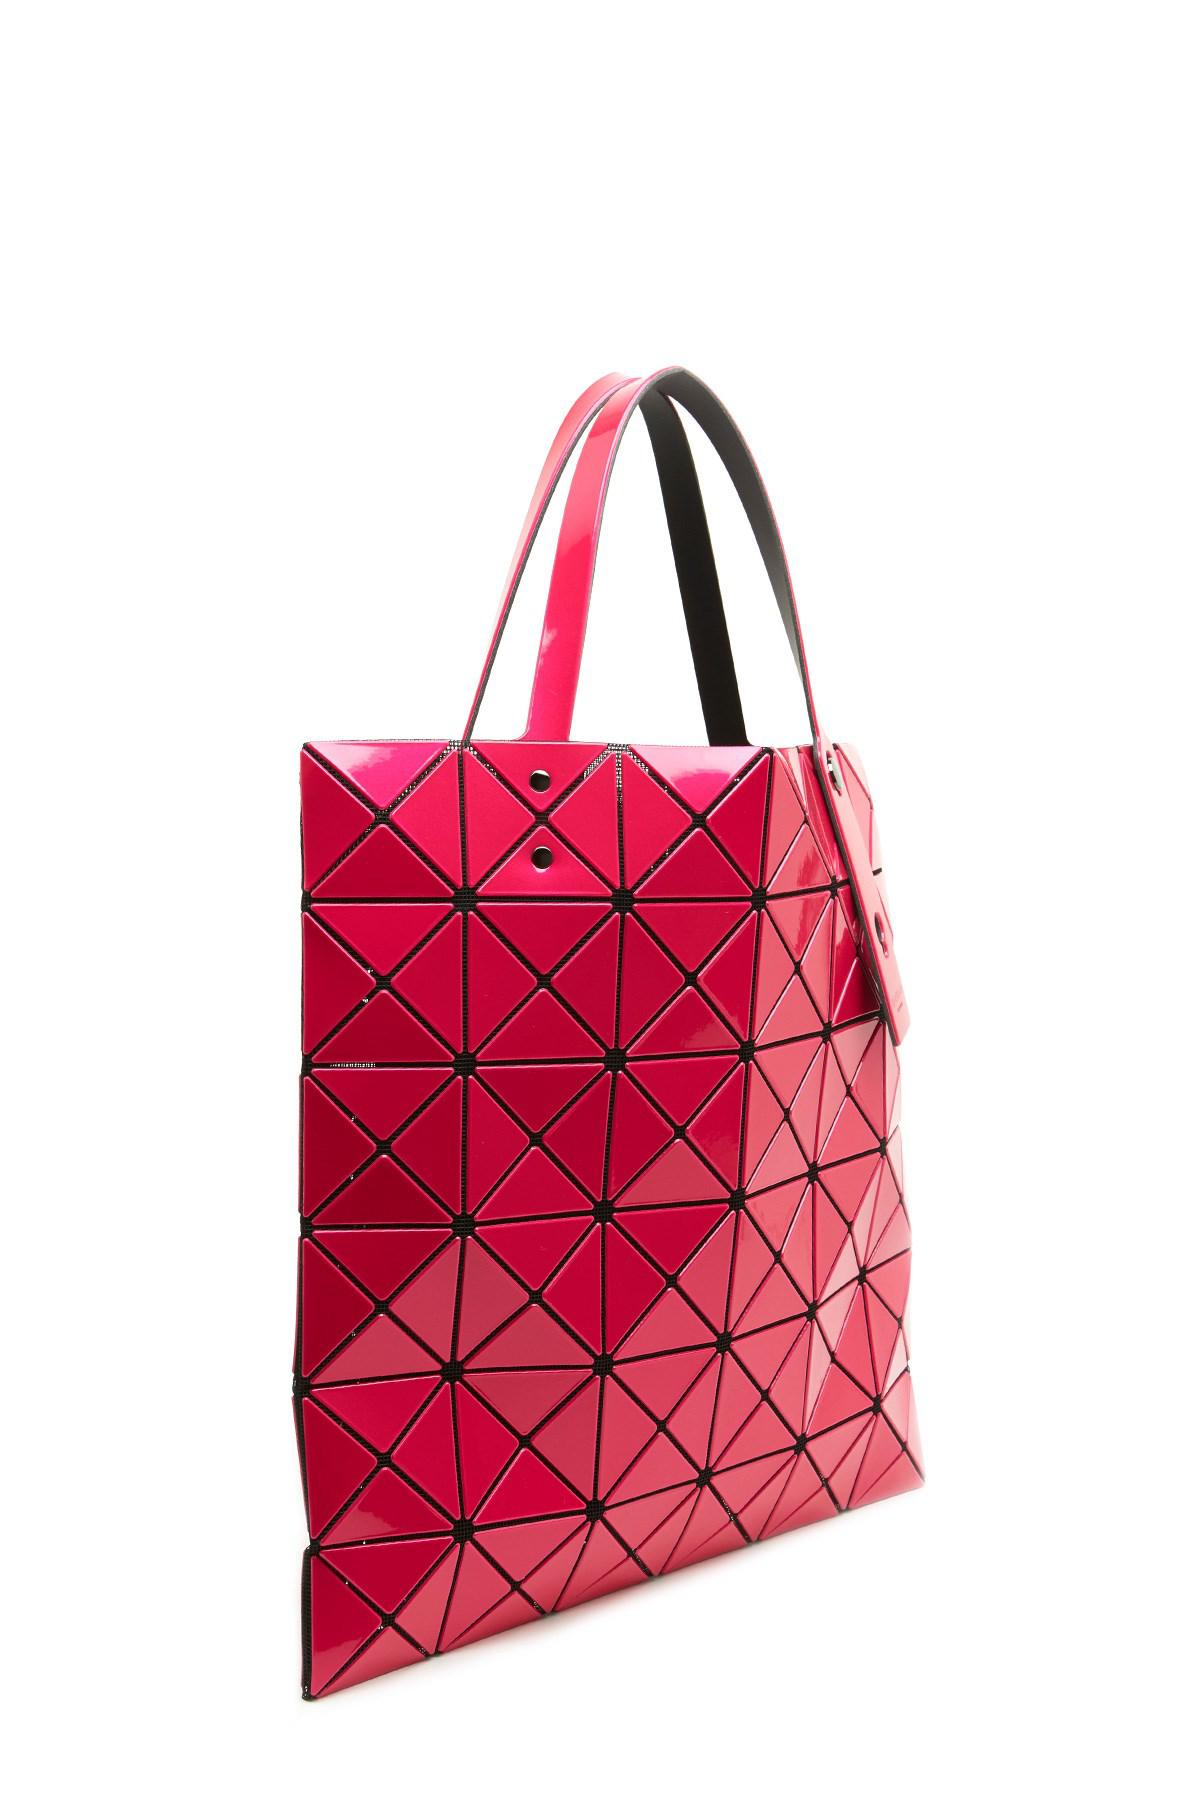 be161c29ed23 Bao Bao Issey Miyake - Multicolor  lucent Metallic  Tote - Lyst. View  fullscreen